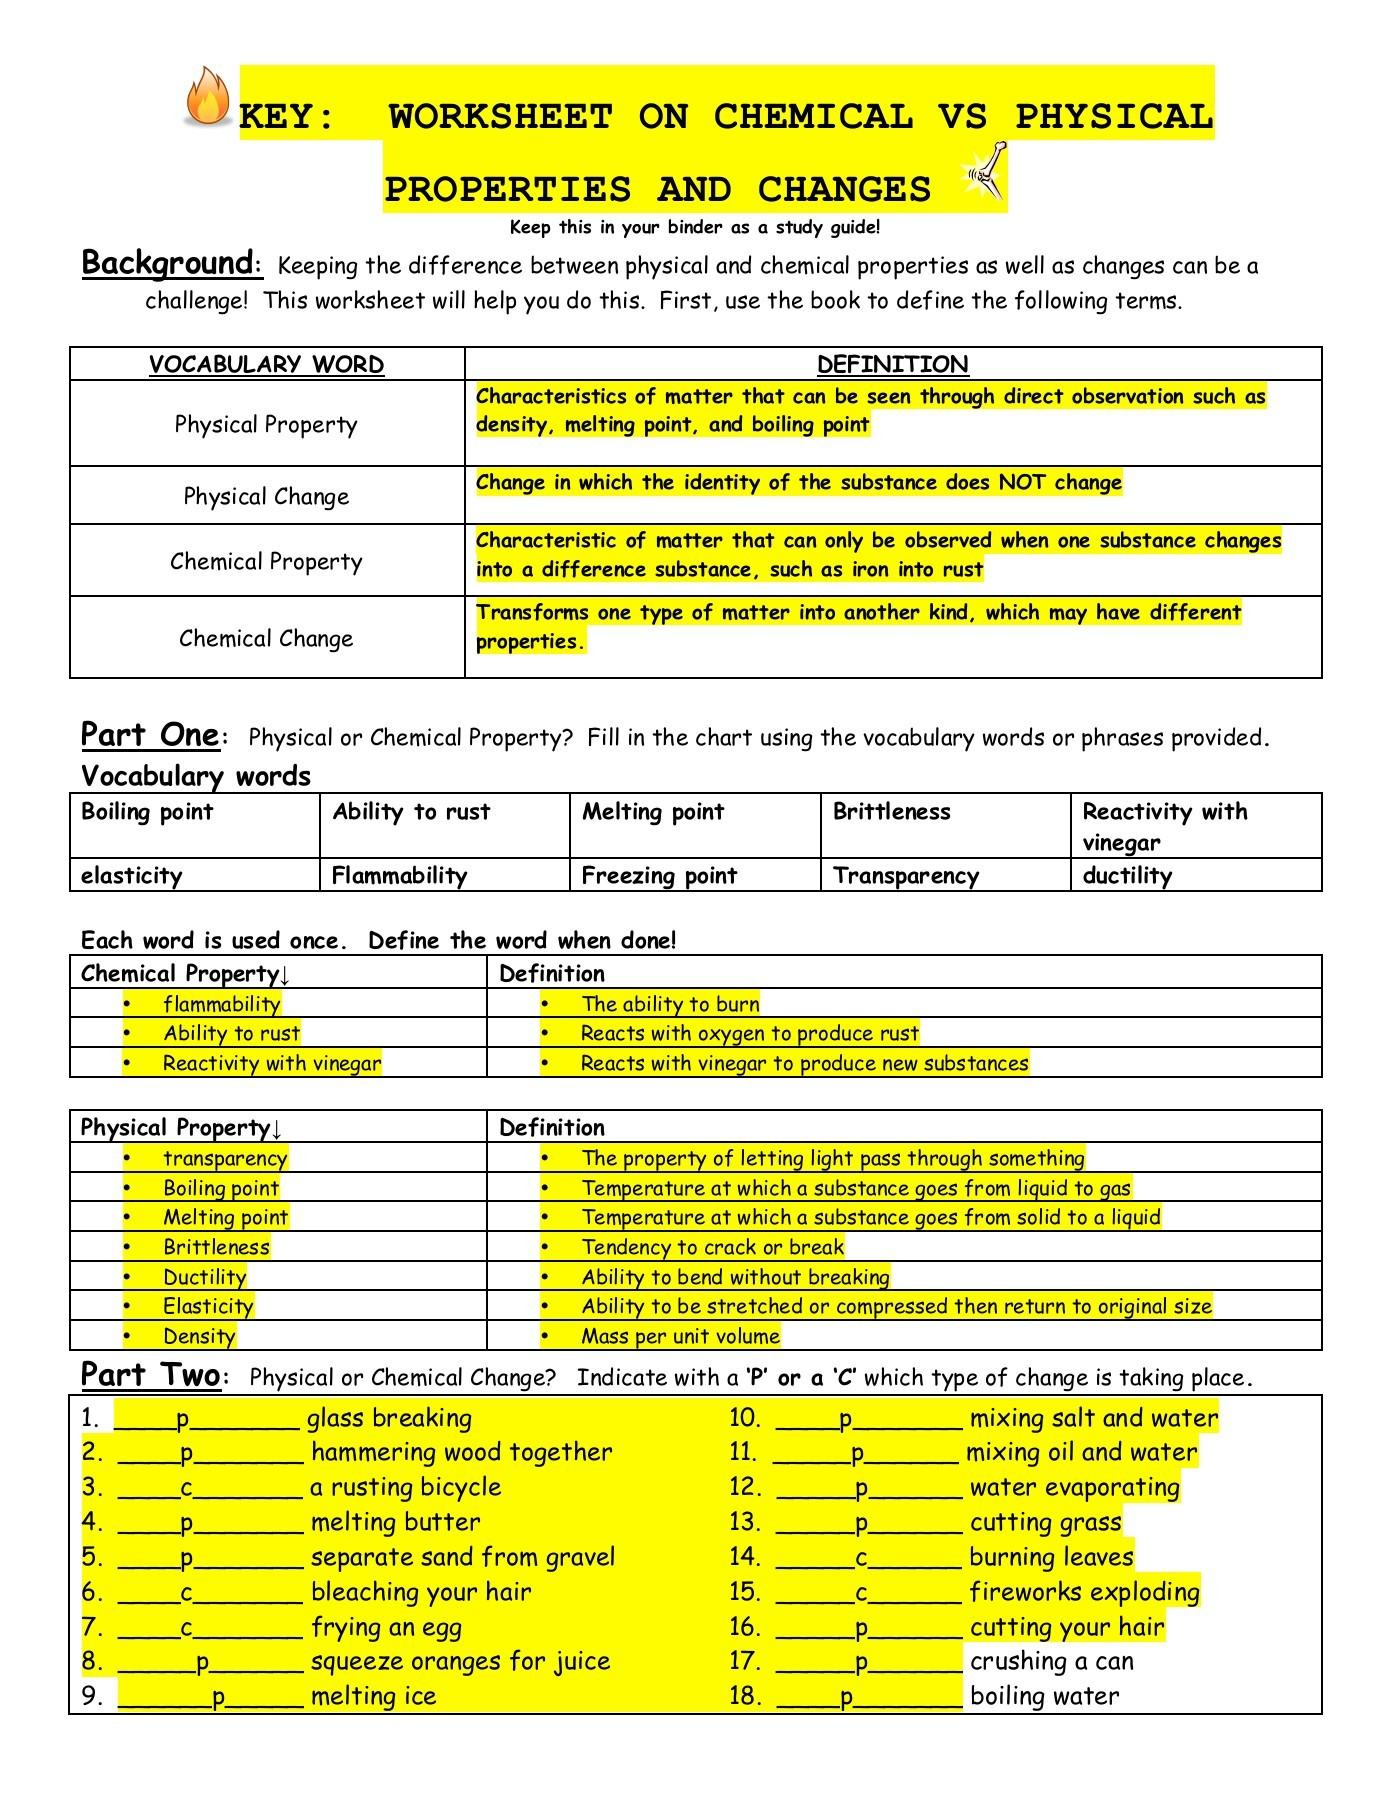 Physical And Chemical Properties And Changes Worksheet Key